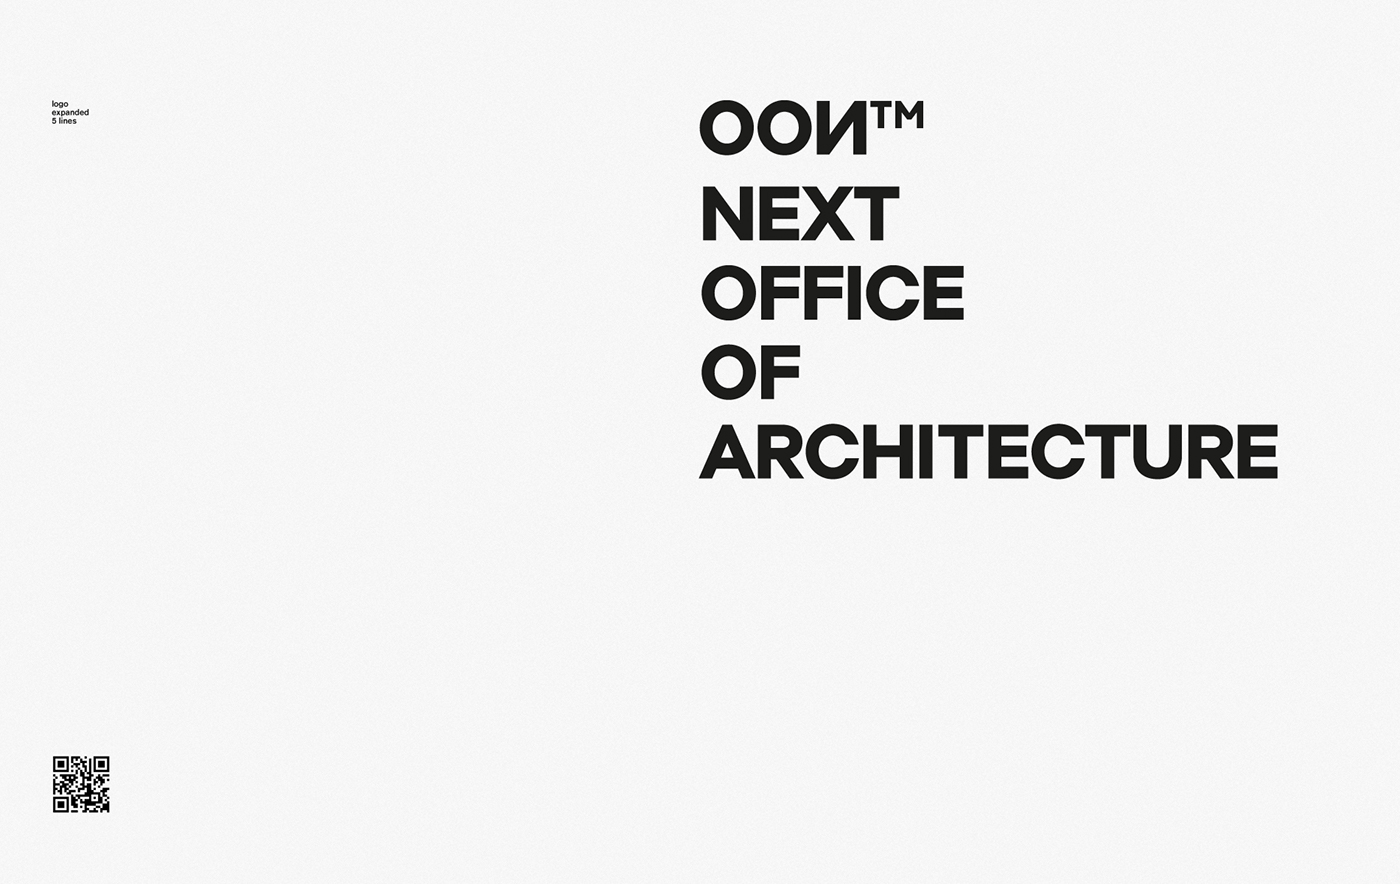 architecture black and white geometry Forms objects Minimalism proportions composition house building